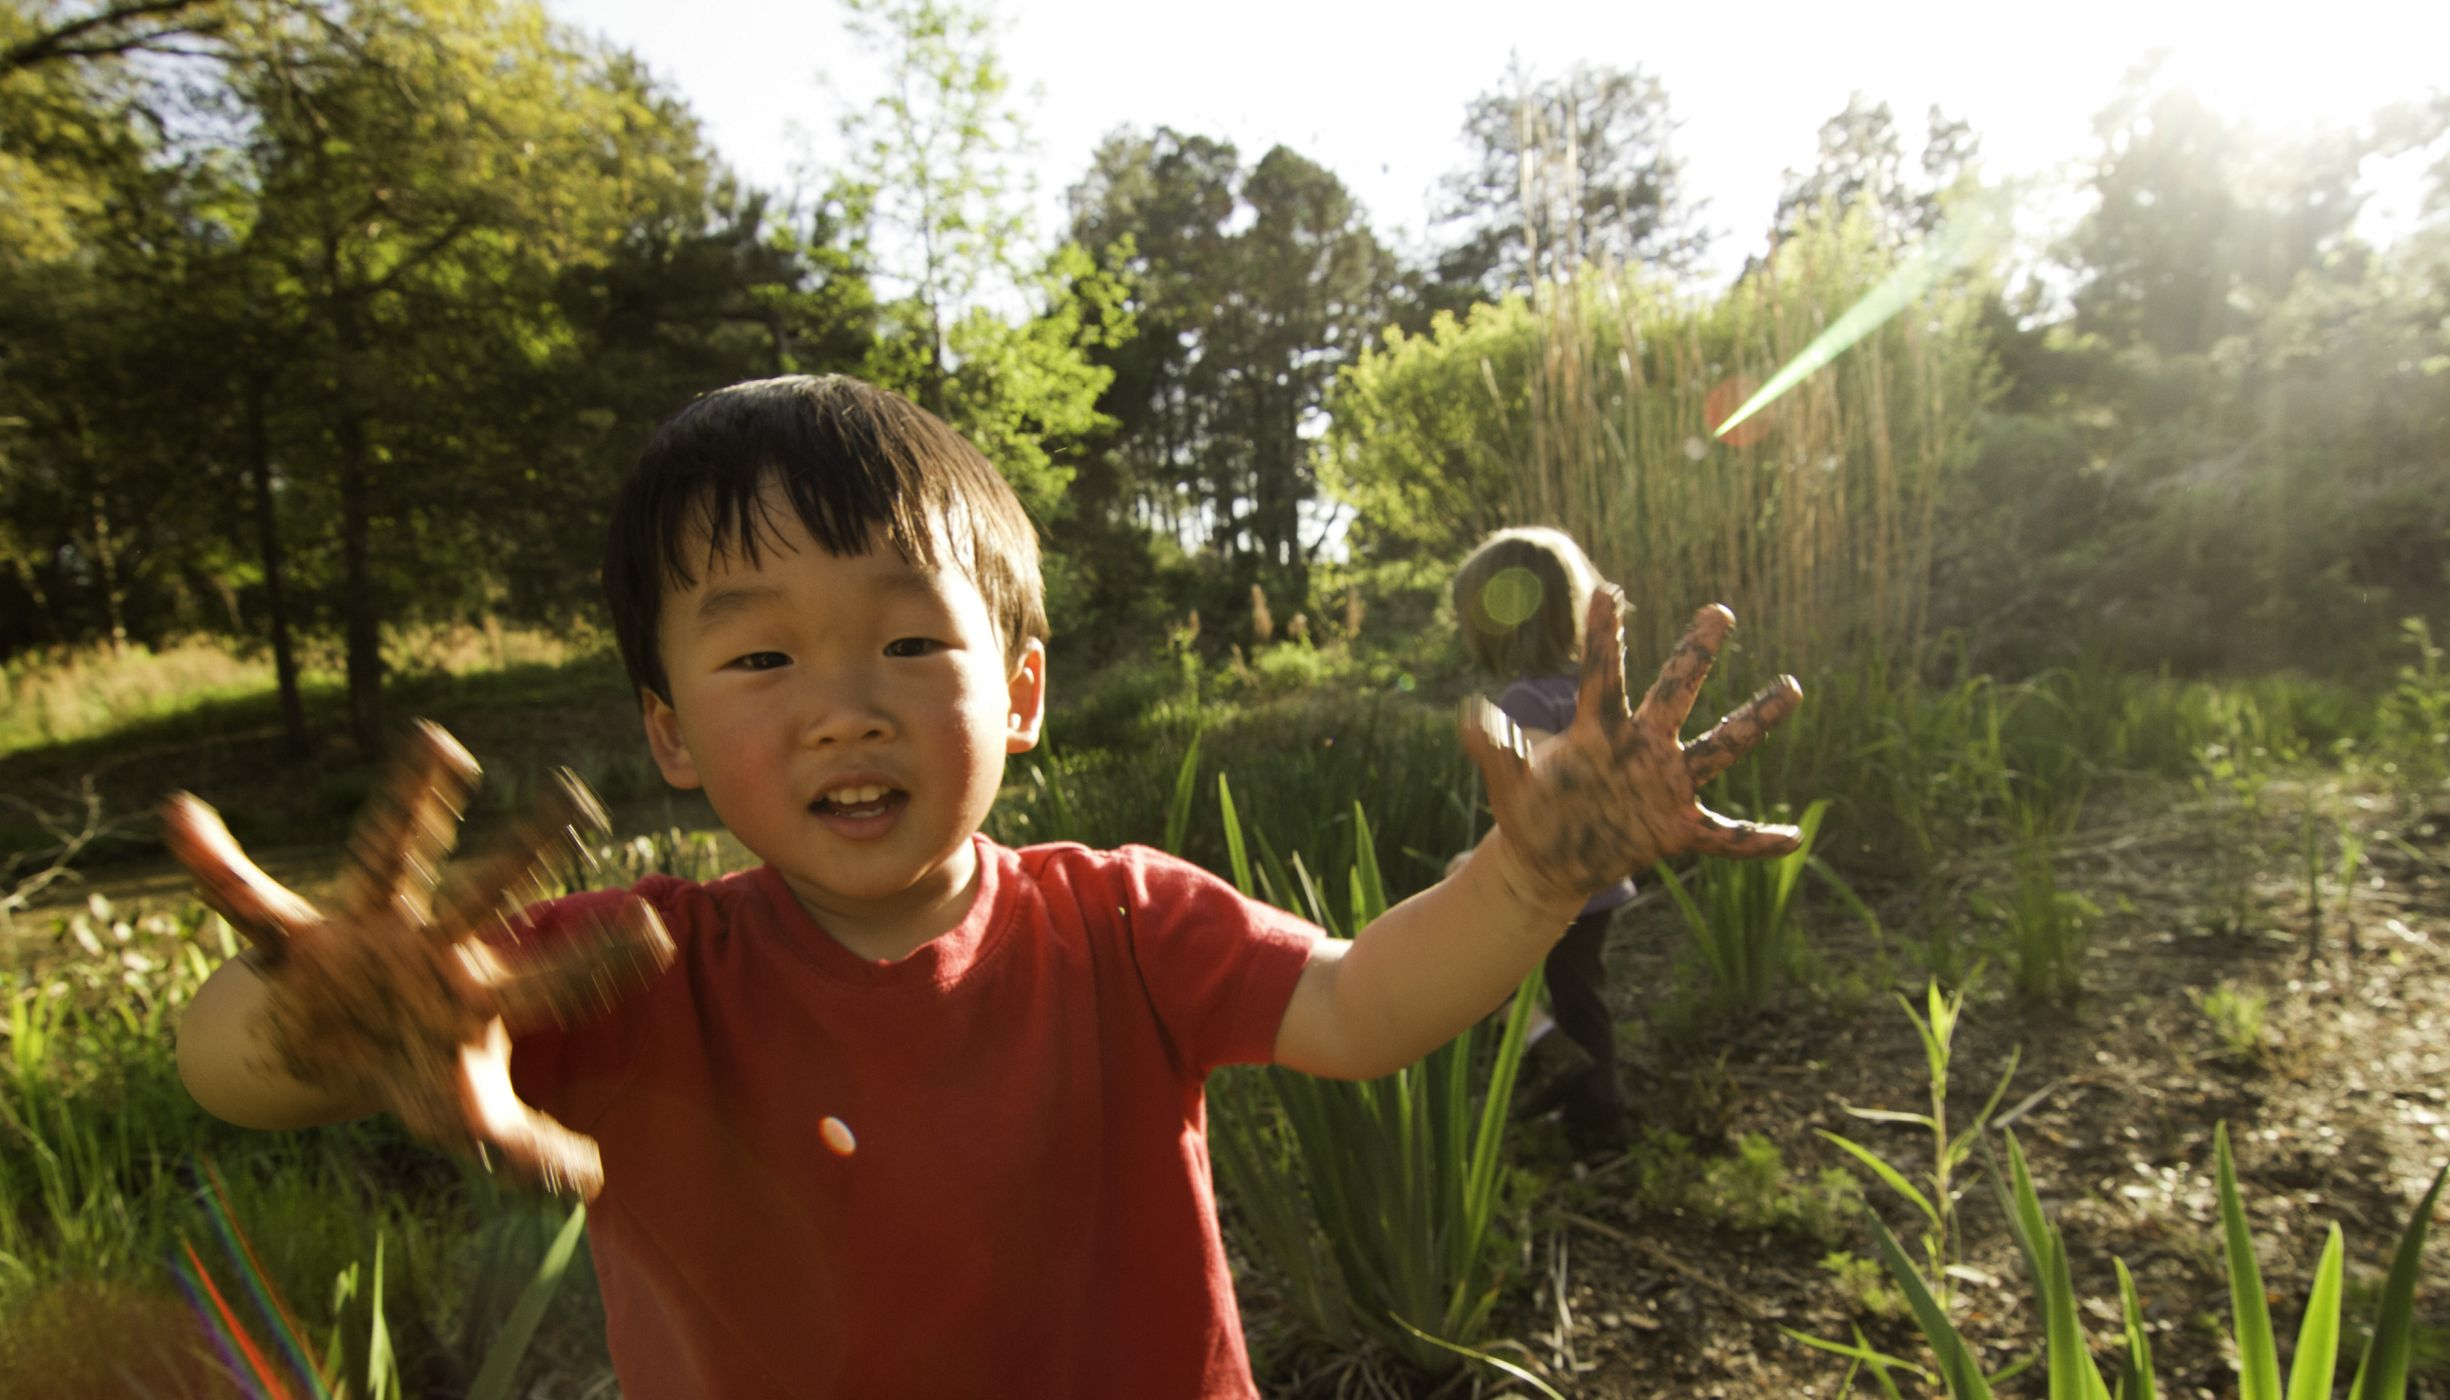 smiling toddler stands in a green space with mud on his hands.